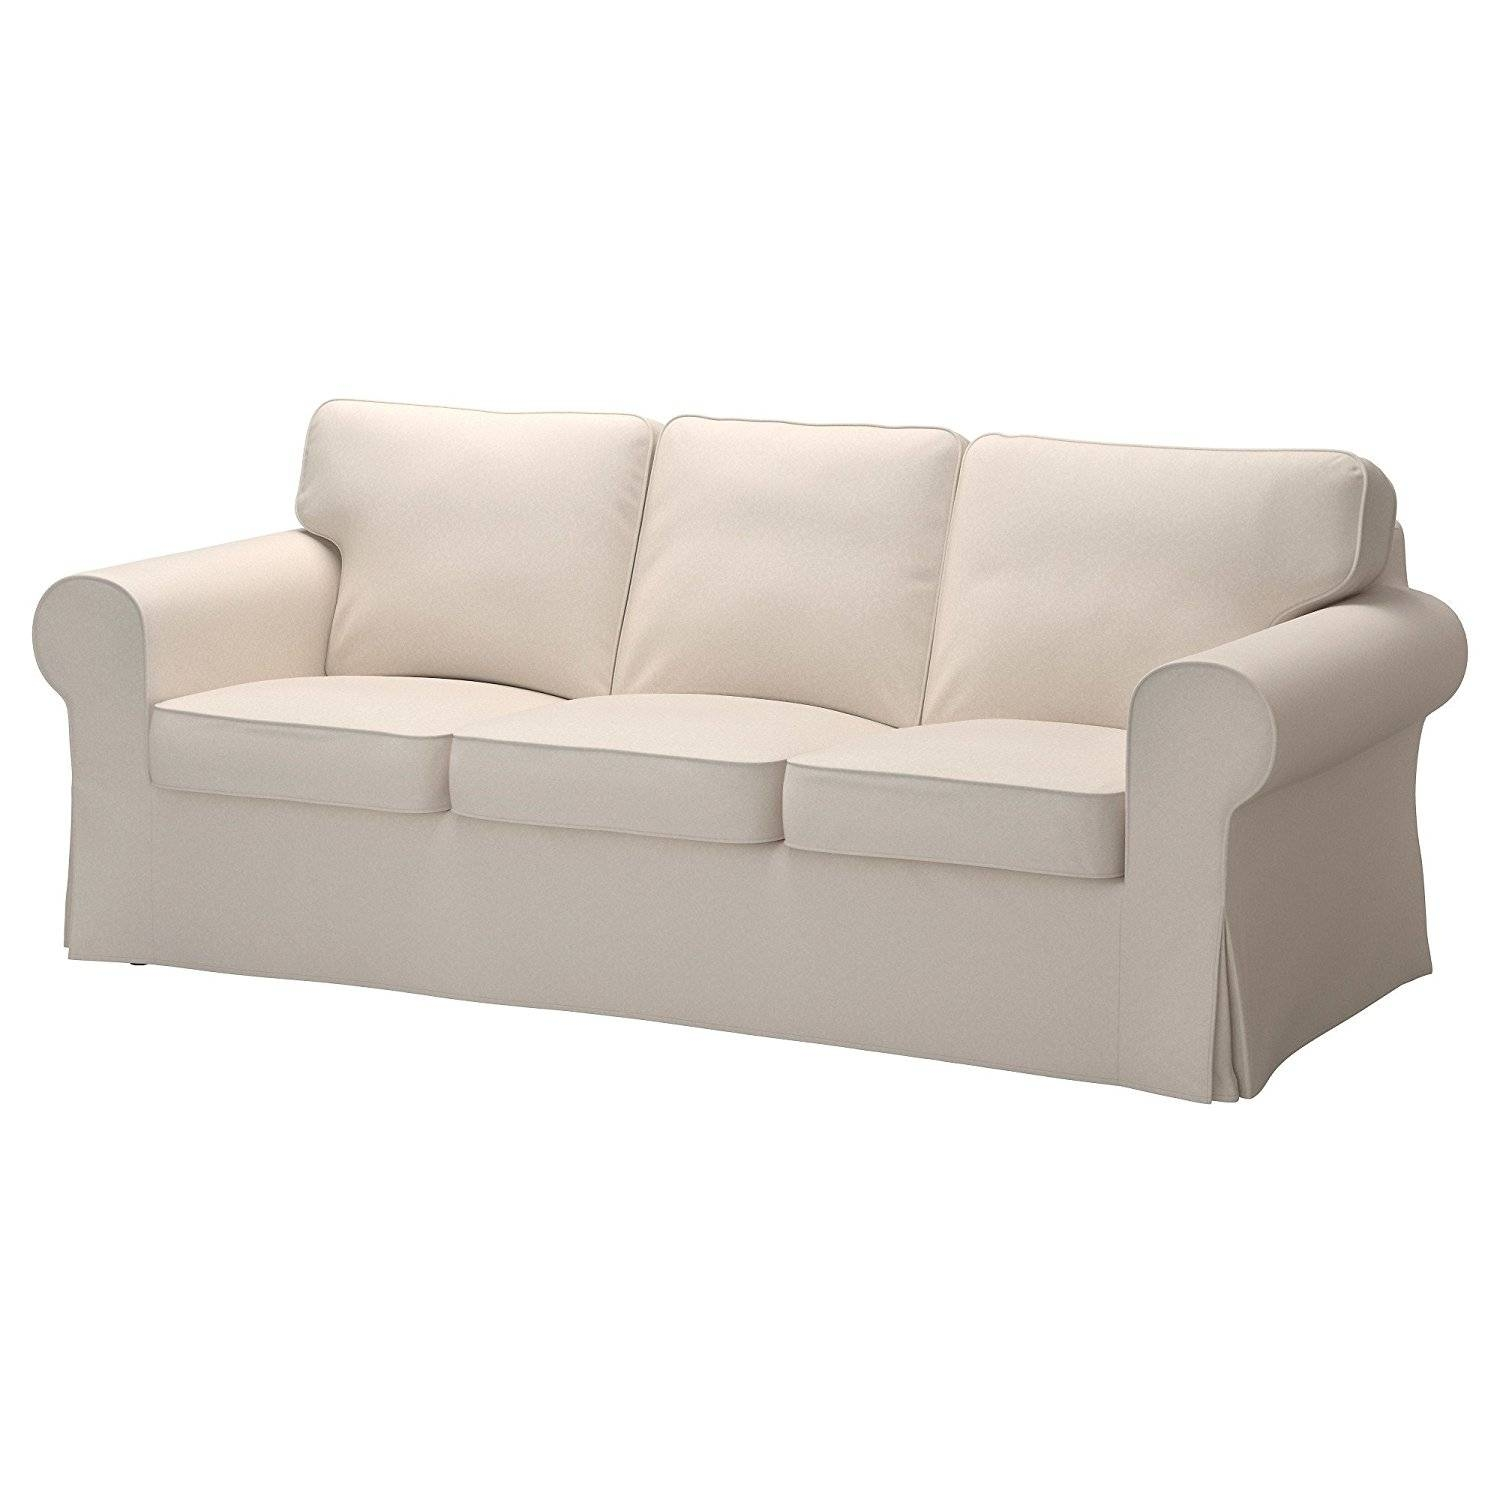 Furniture: Easy To Put On And Very Comfortable To Sit With intended for Slipcovers For 3 Cushion Sofas (Image 4 of 15)